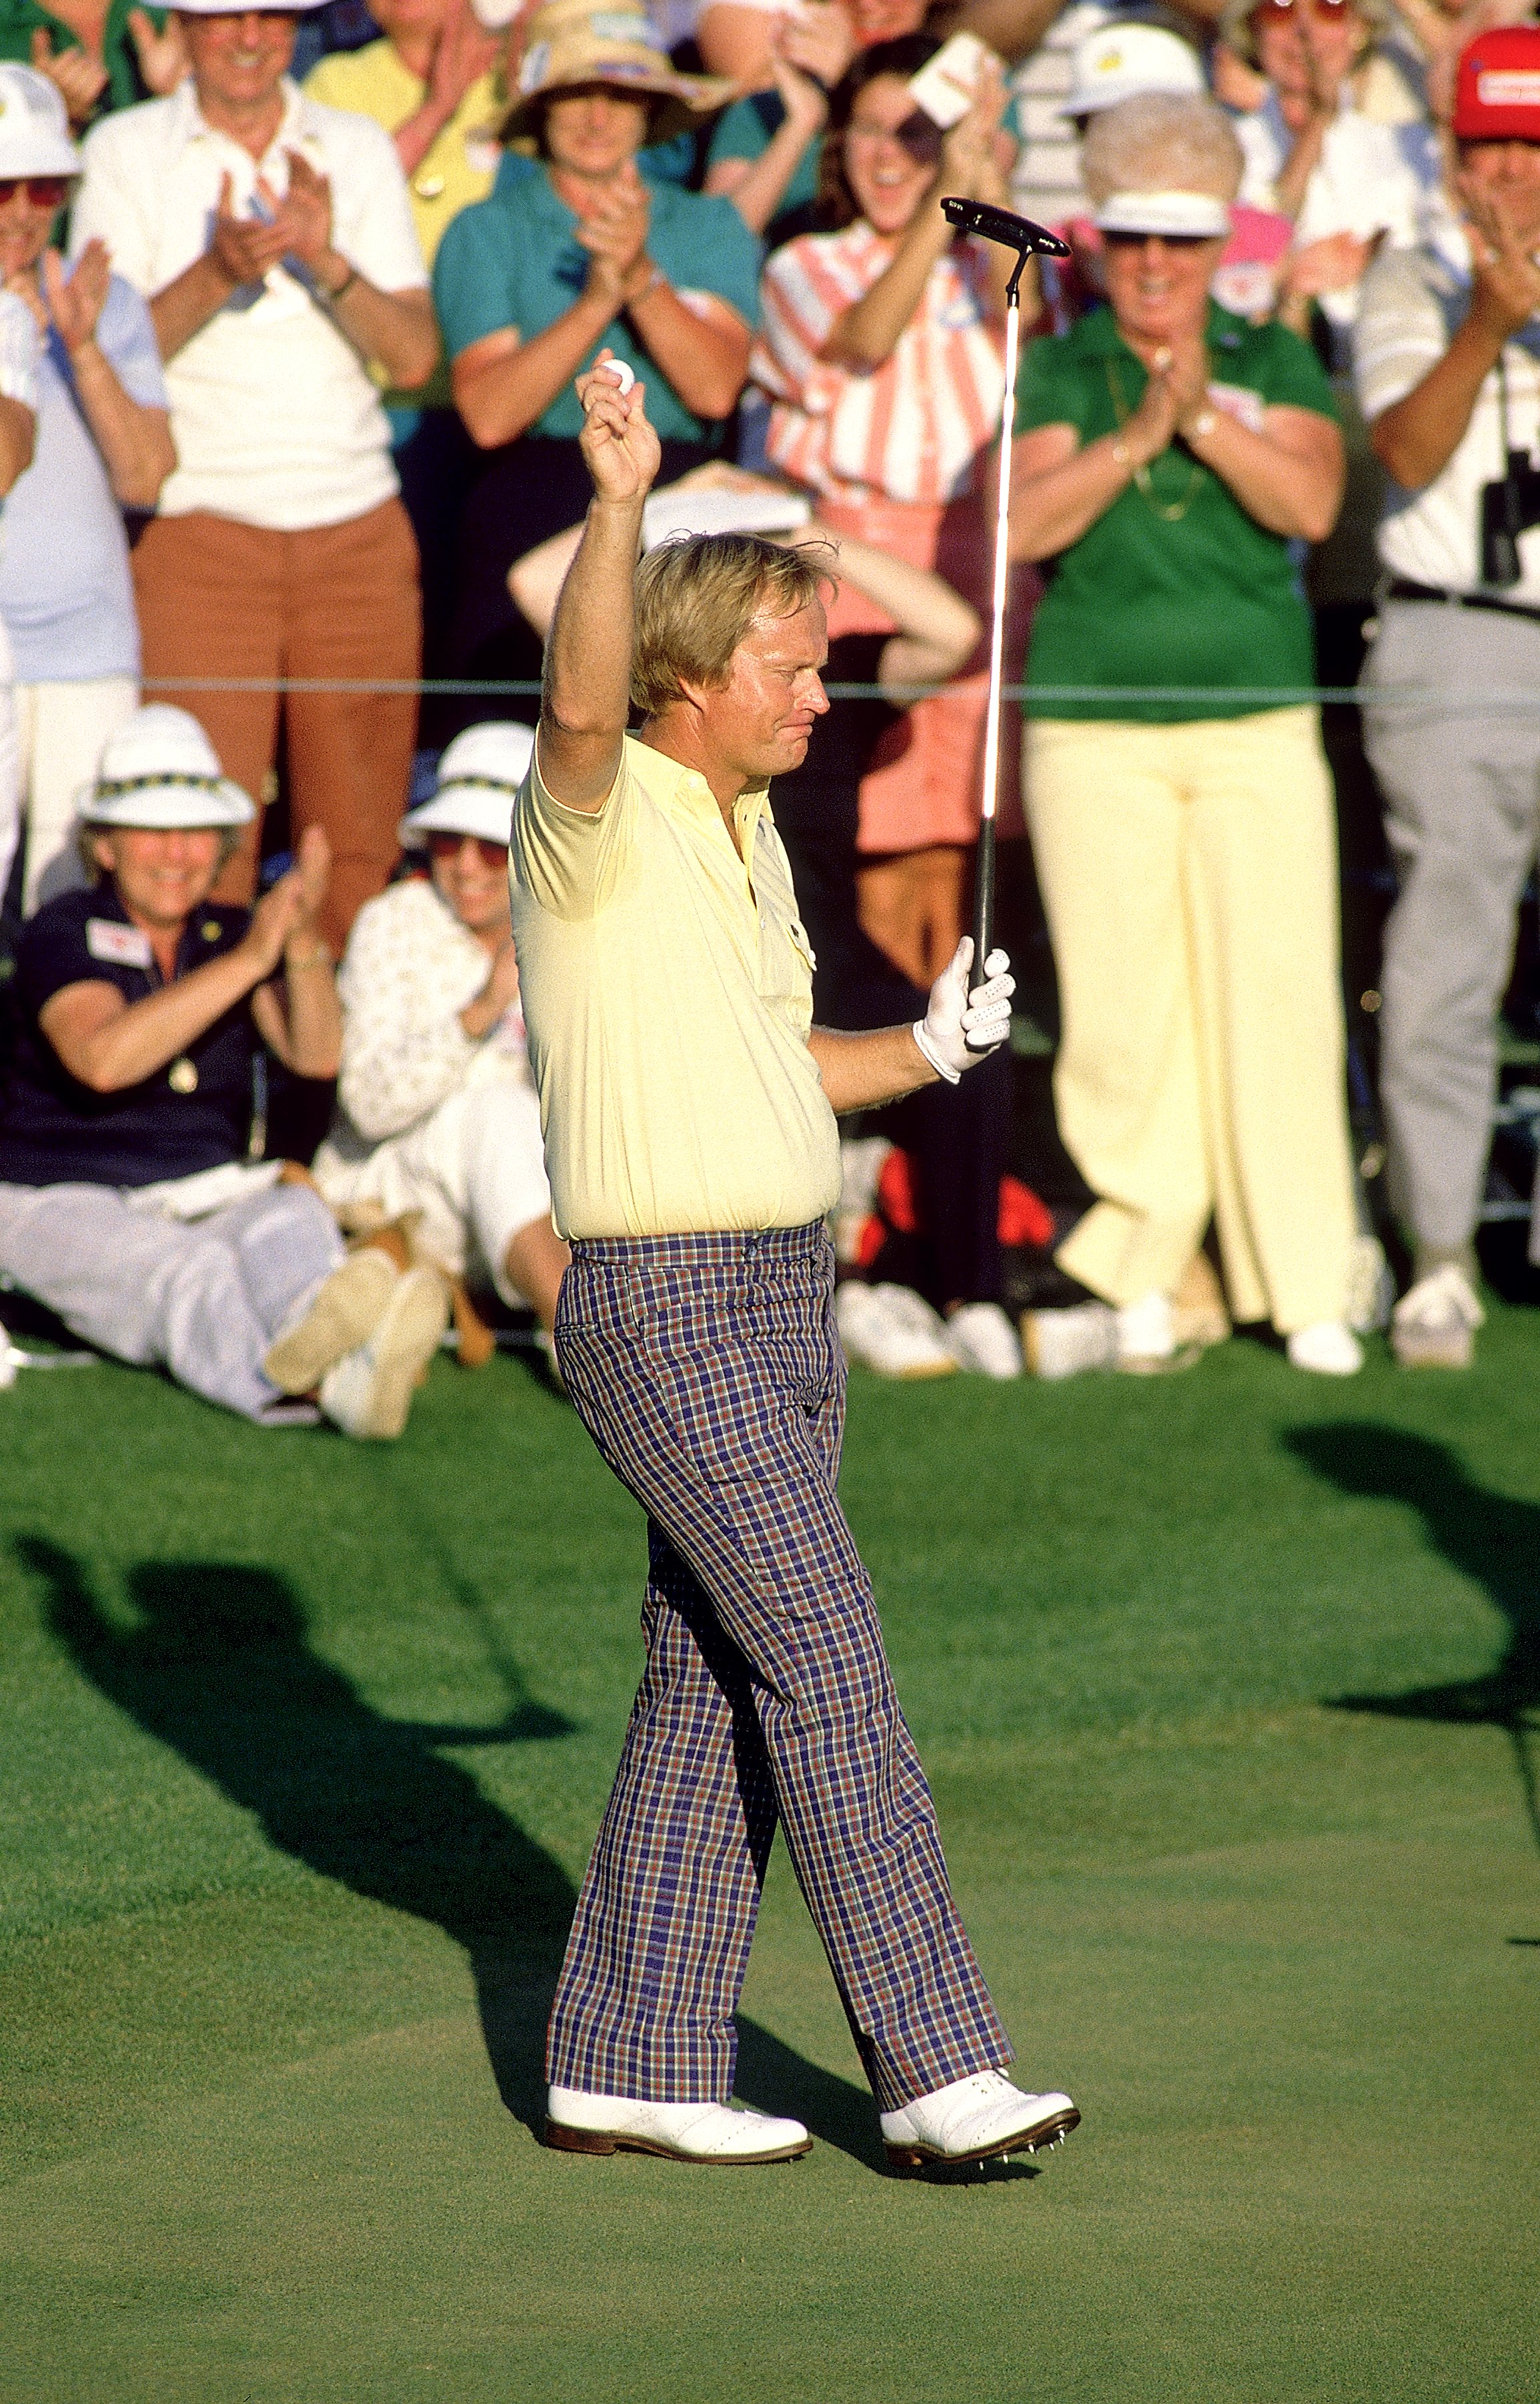 13 Apr 1986: Jack Nicklaus of the USA celebrates on the final green after victory in the US Masters at Augusta National in Georgia, USA. \ Mandatory Credit: David Cannon /Allsport